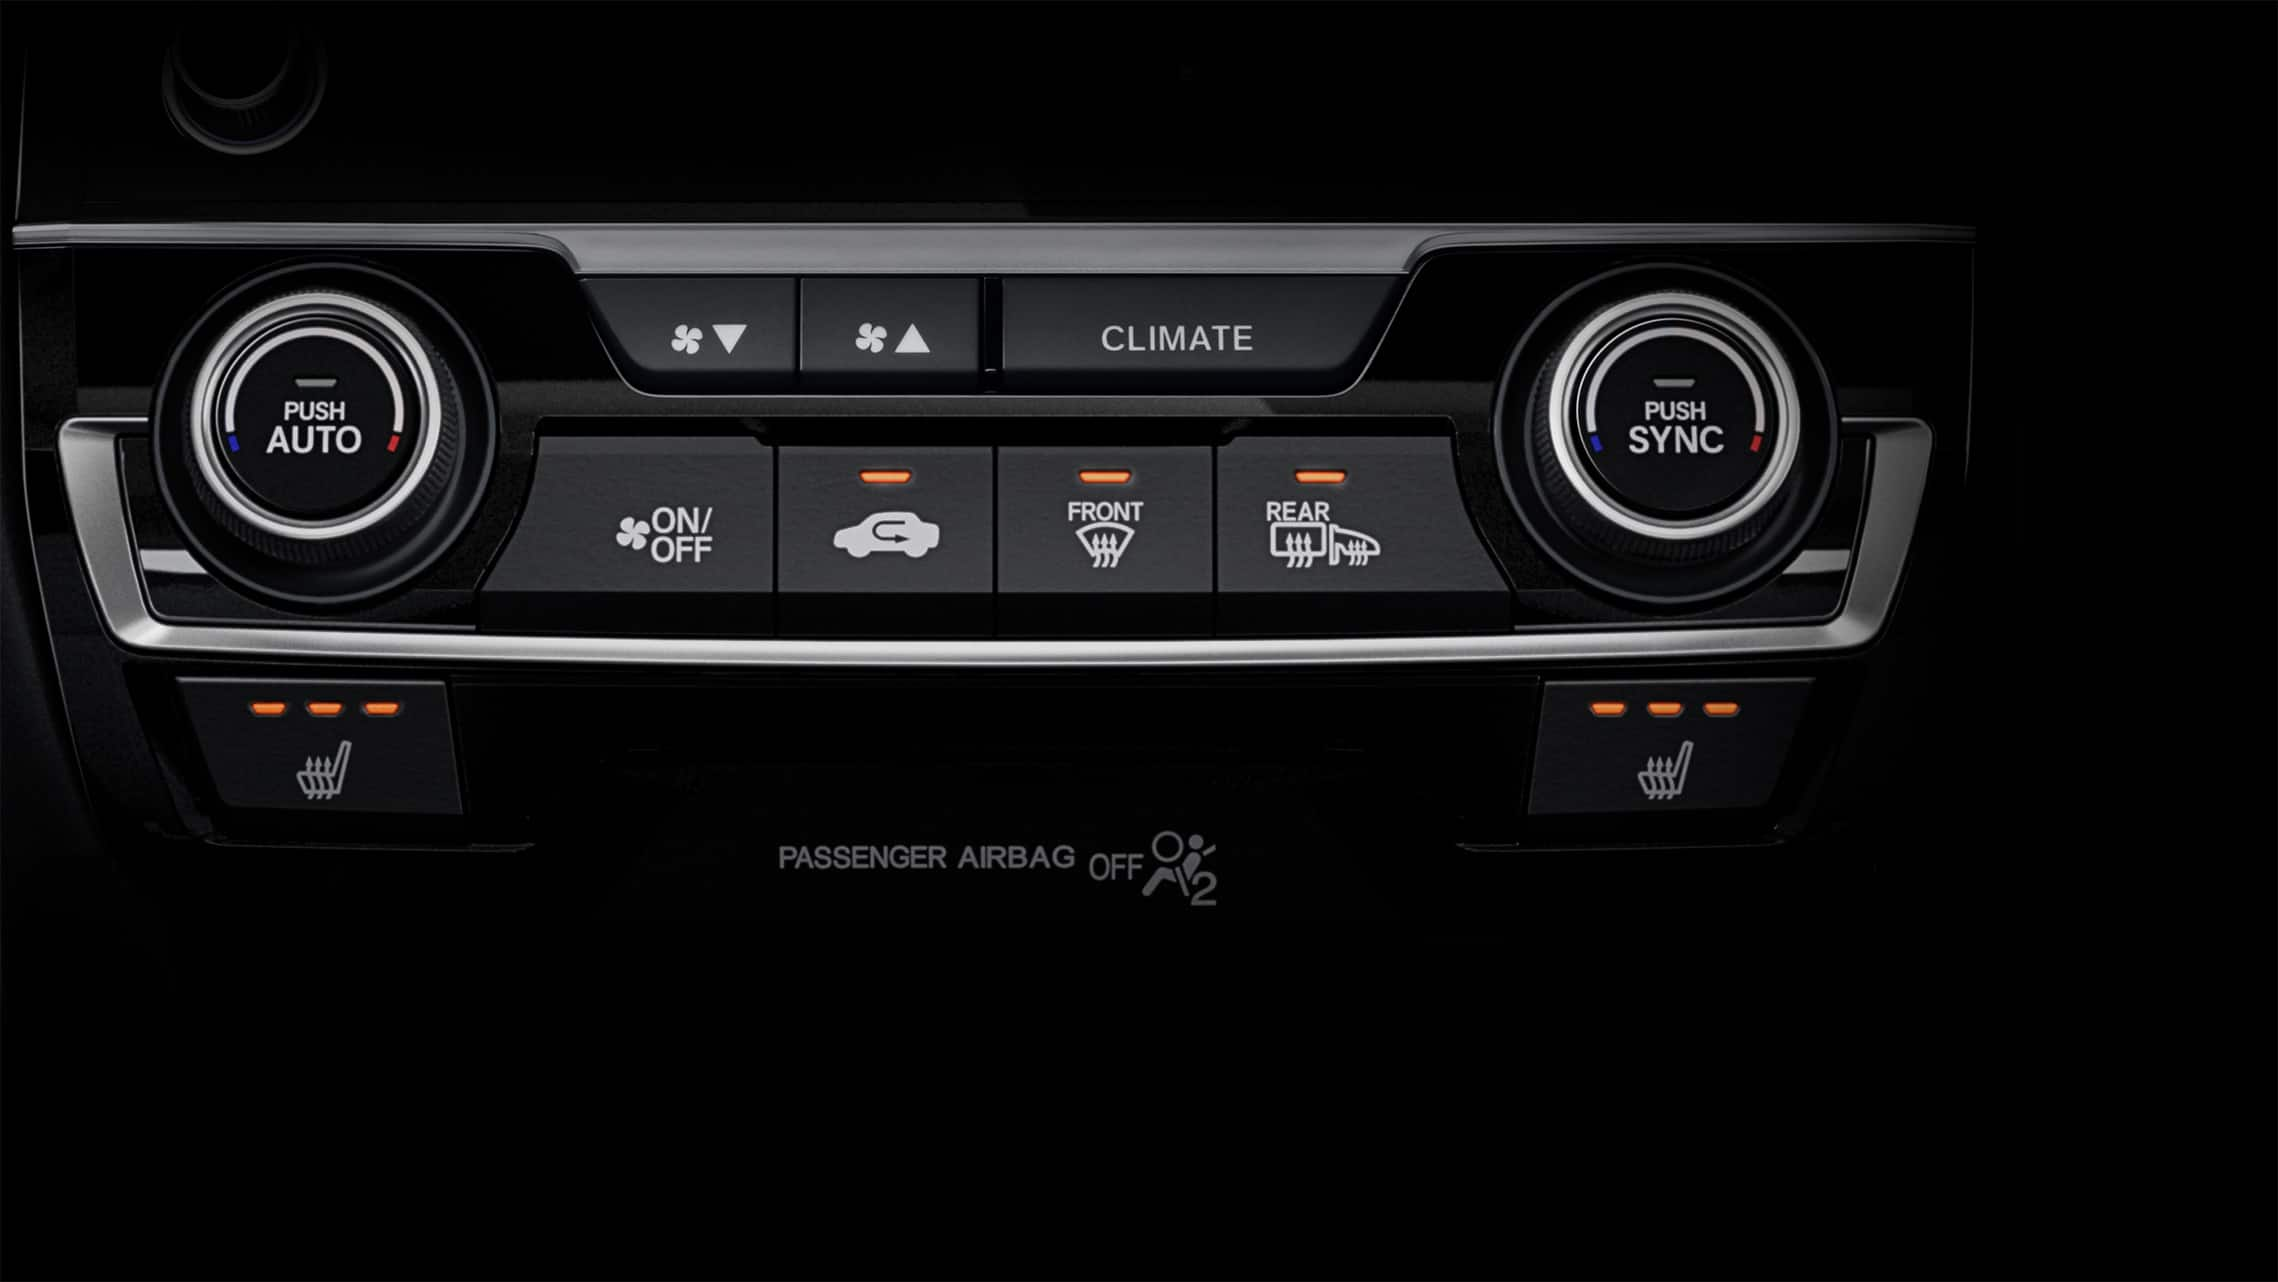 Detail of heated seat controls in 2020 Honda Civic Sport Touring Hatchback.